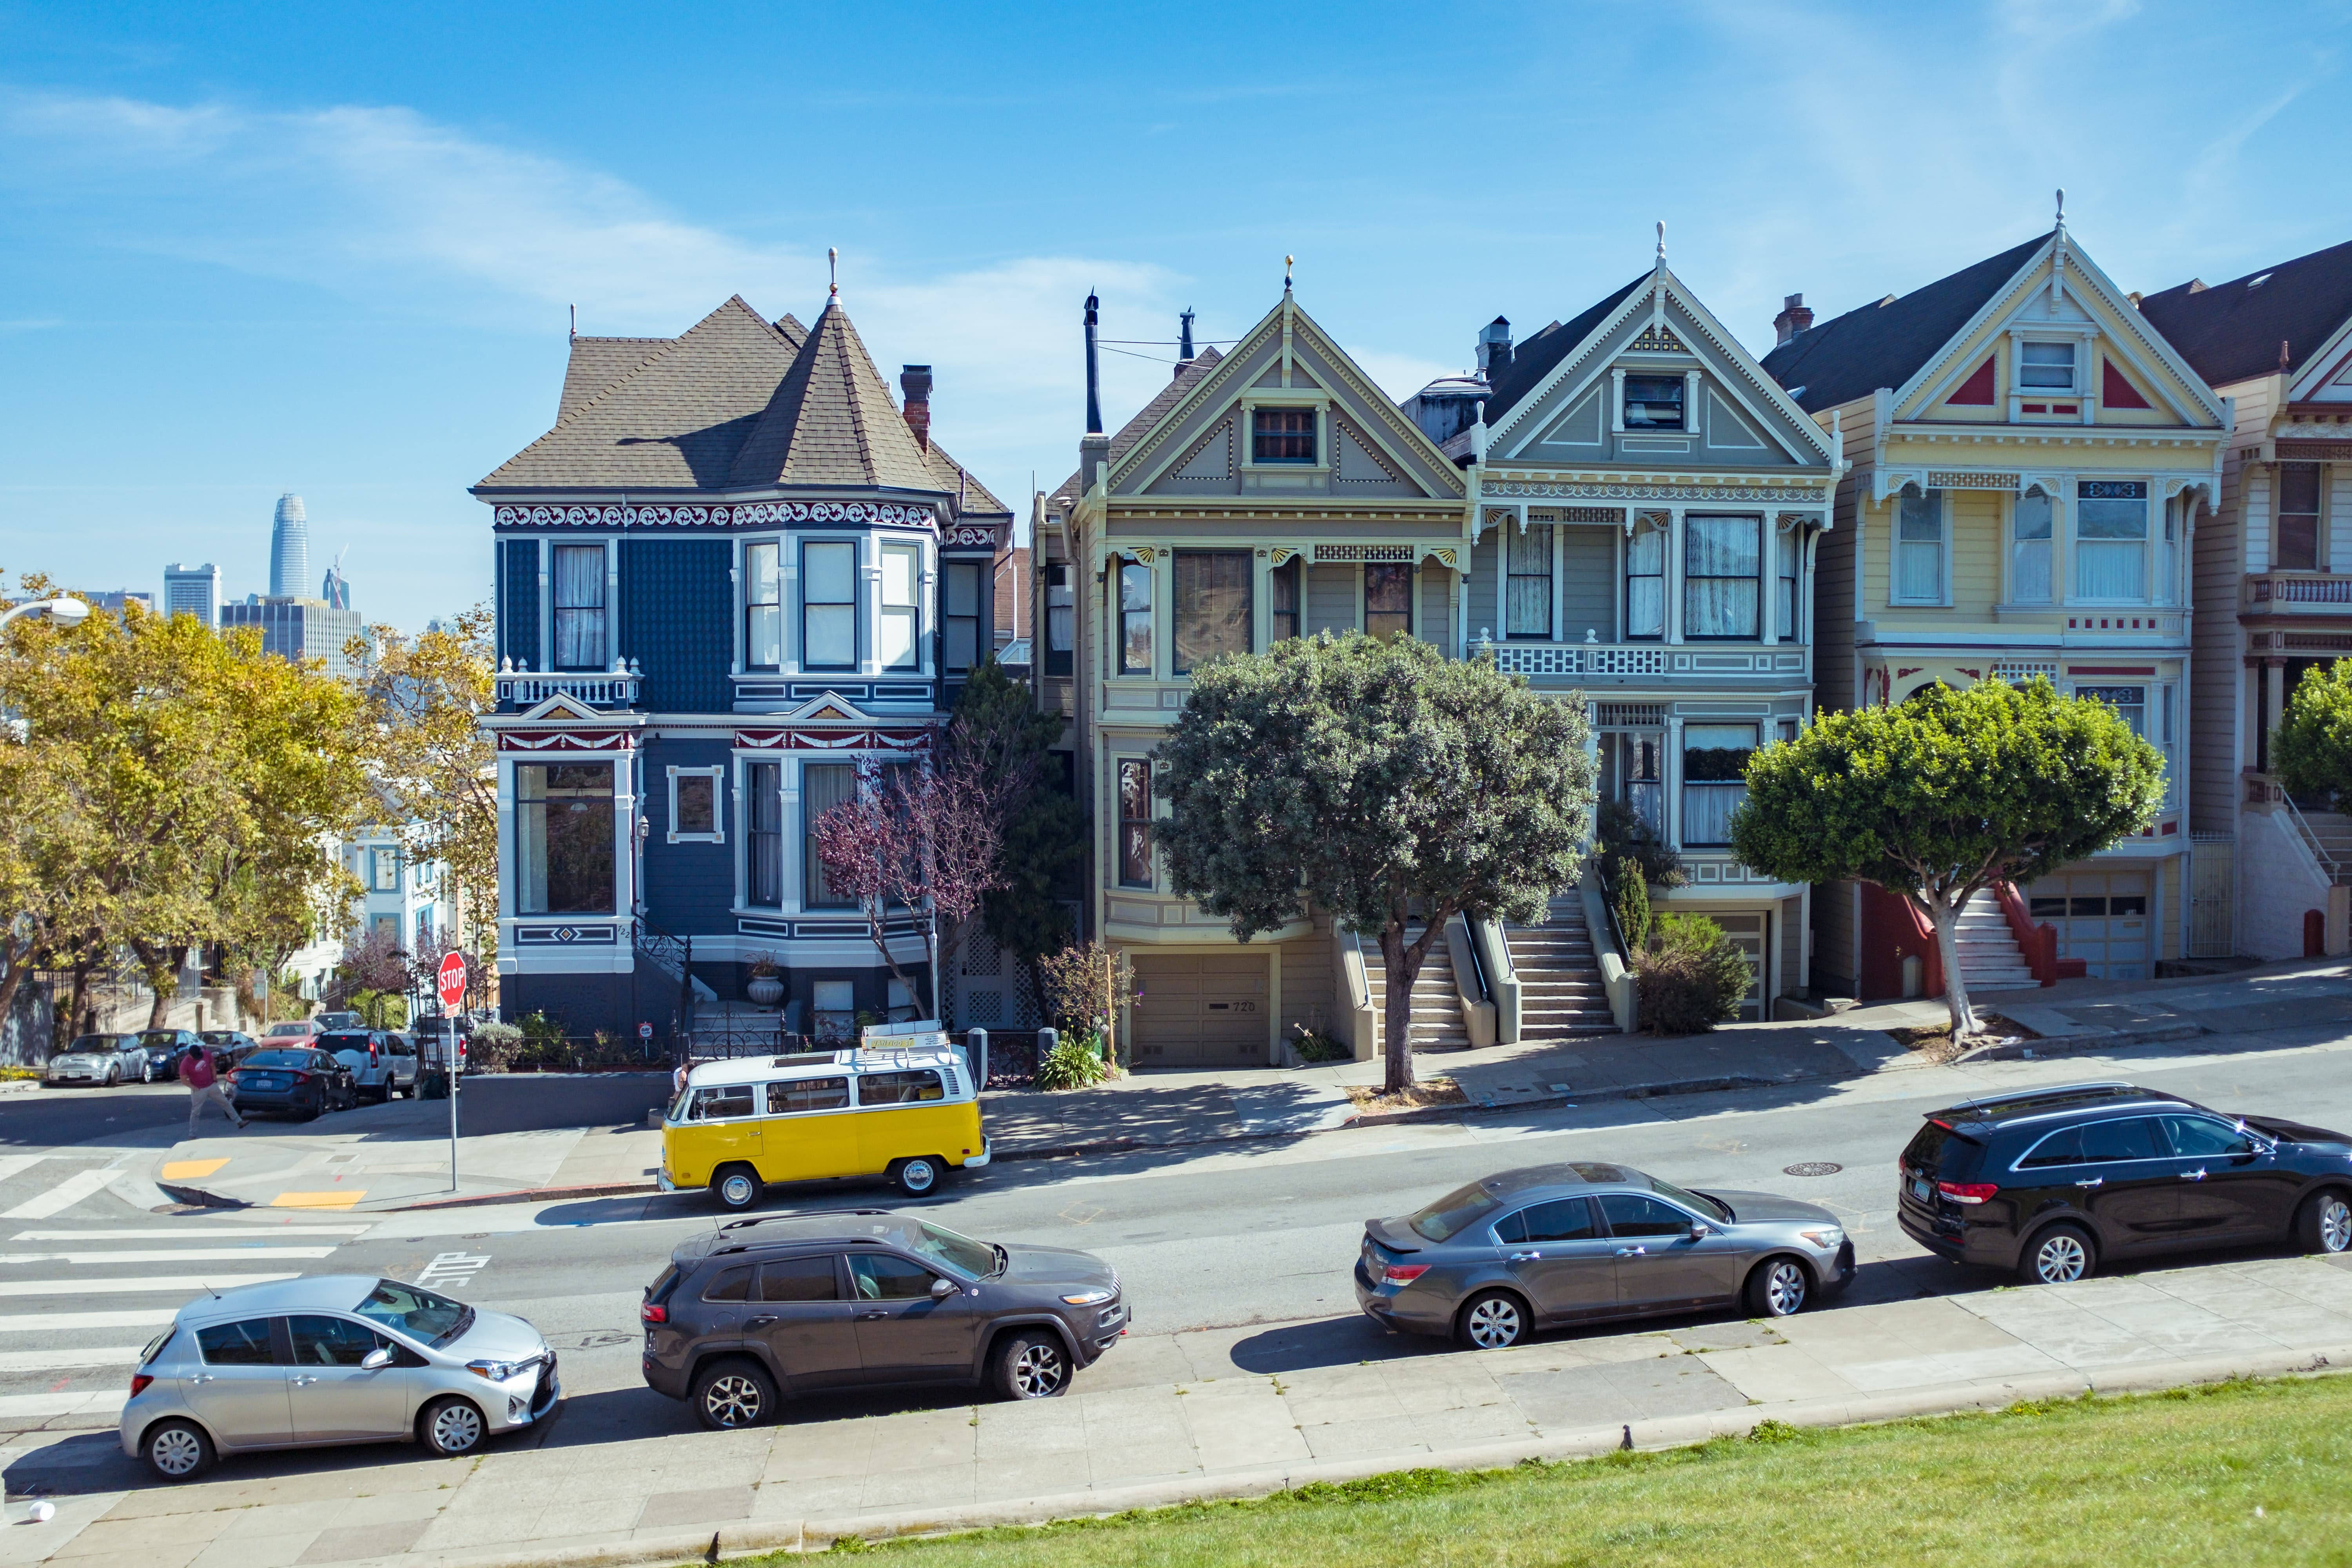 San Francisco's lowest rent prices in 3 years, down 9.2%